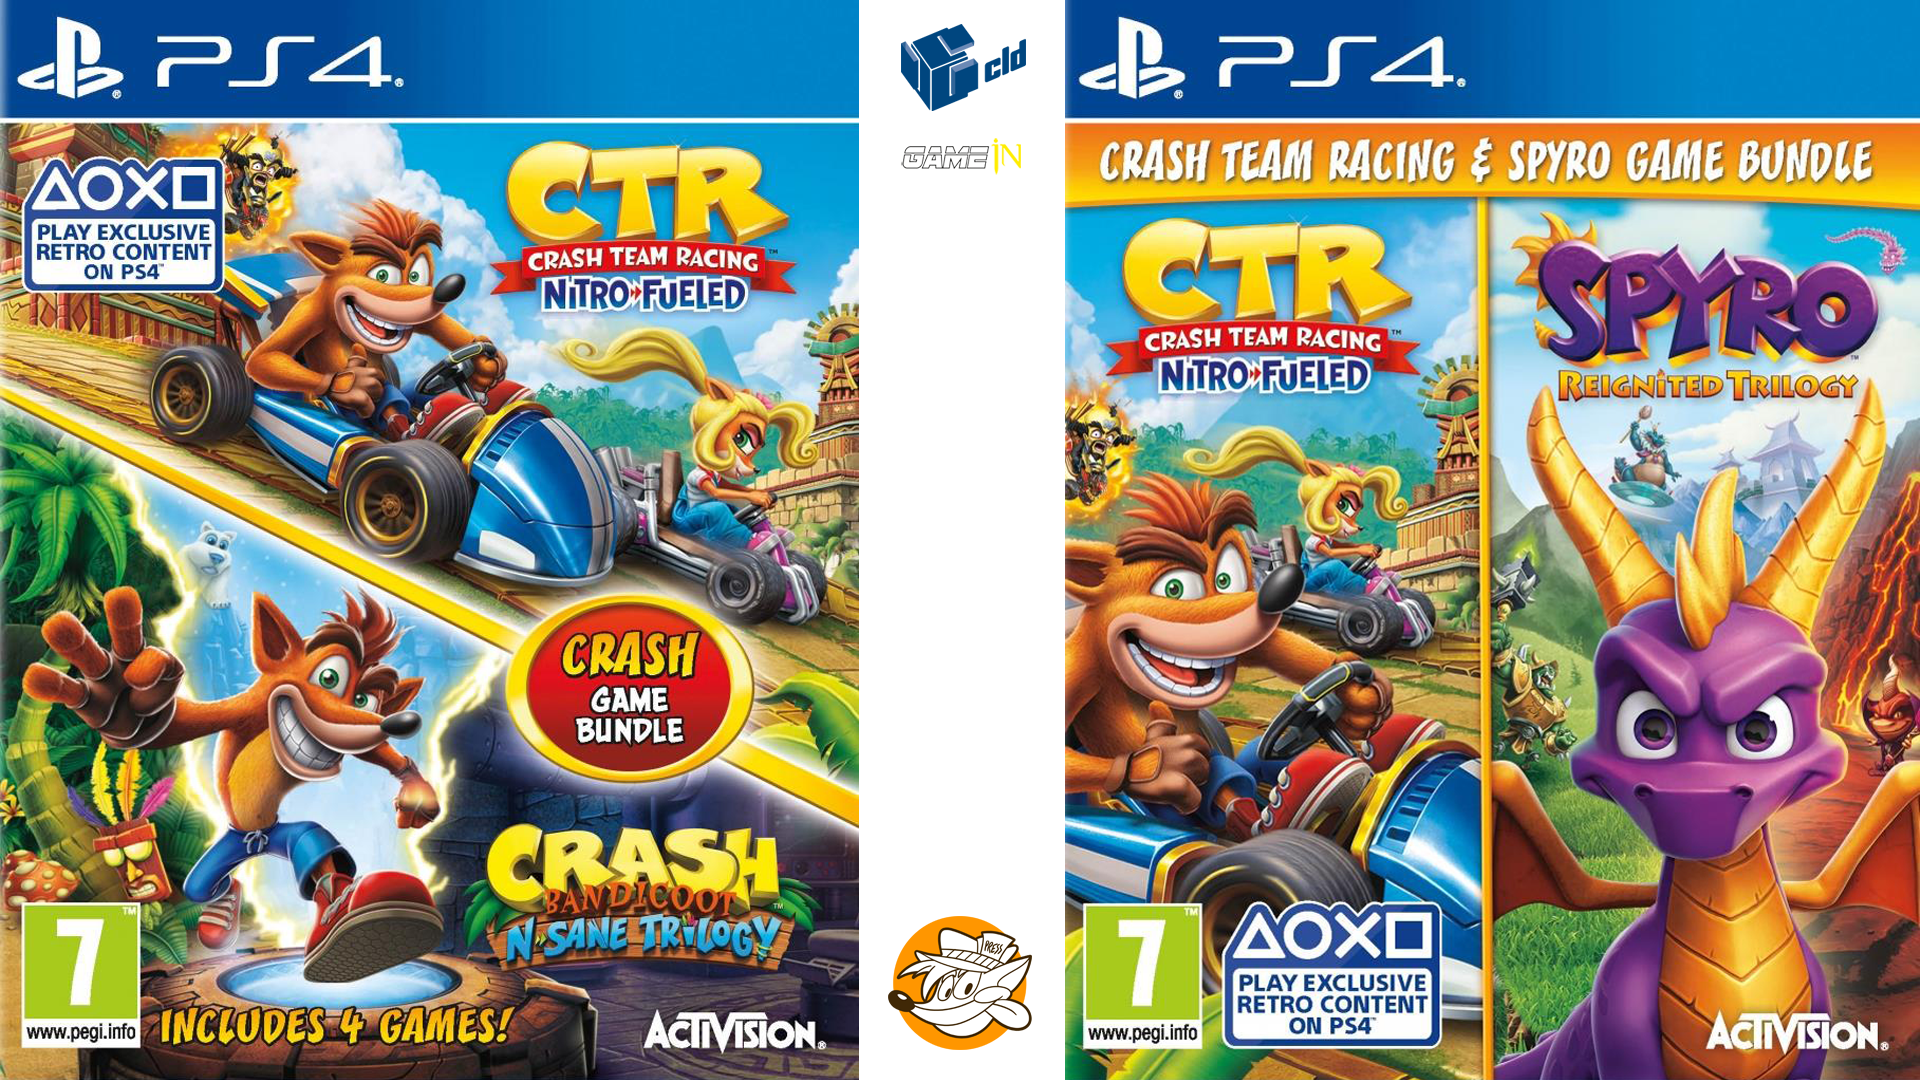 Update Cld Belgium And Gamein Netherlands Reveal Cover Arts For Crash Bandicoot N Sane Trilogy Spyro Reignited Trilogy Bundles With Crash Team Racing Nitro Fueled Coming November 8 Crashy News